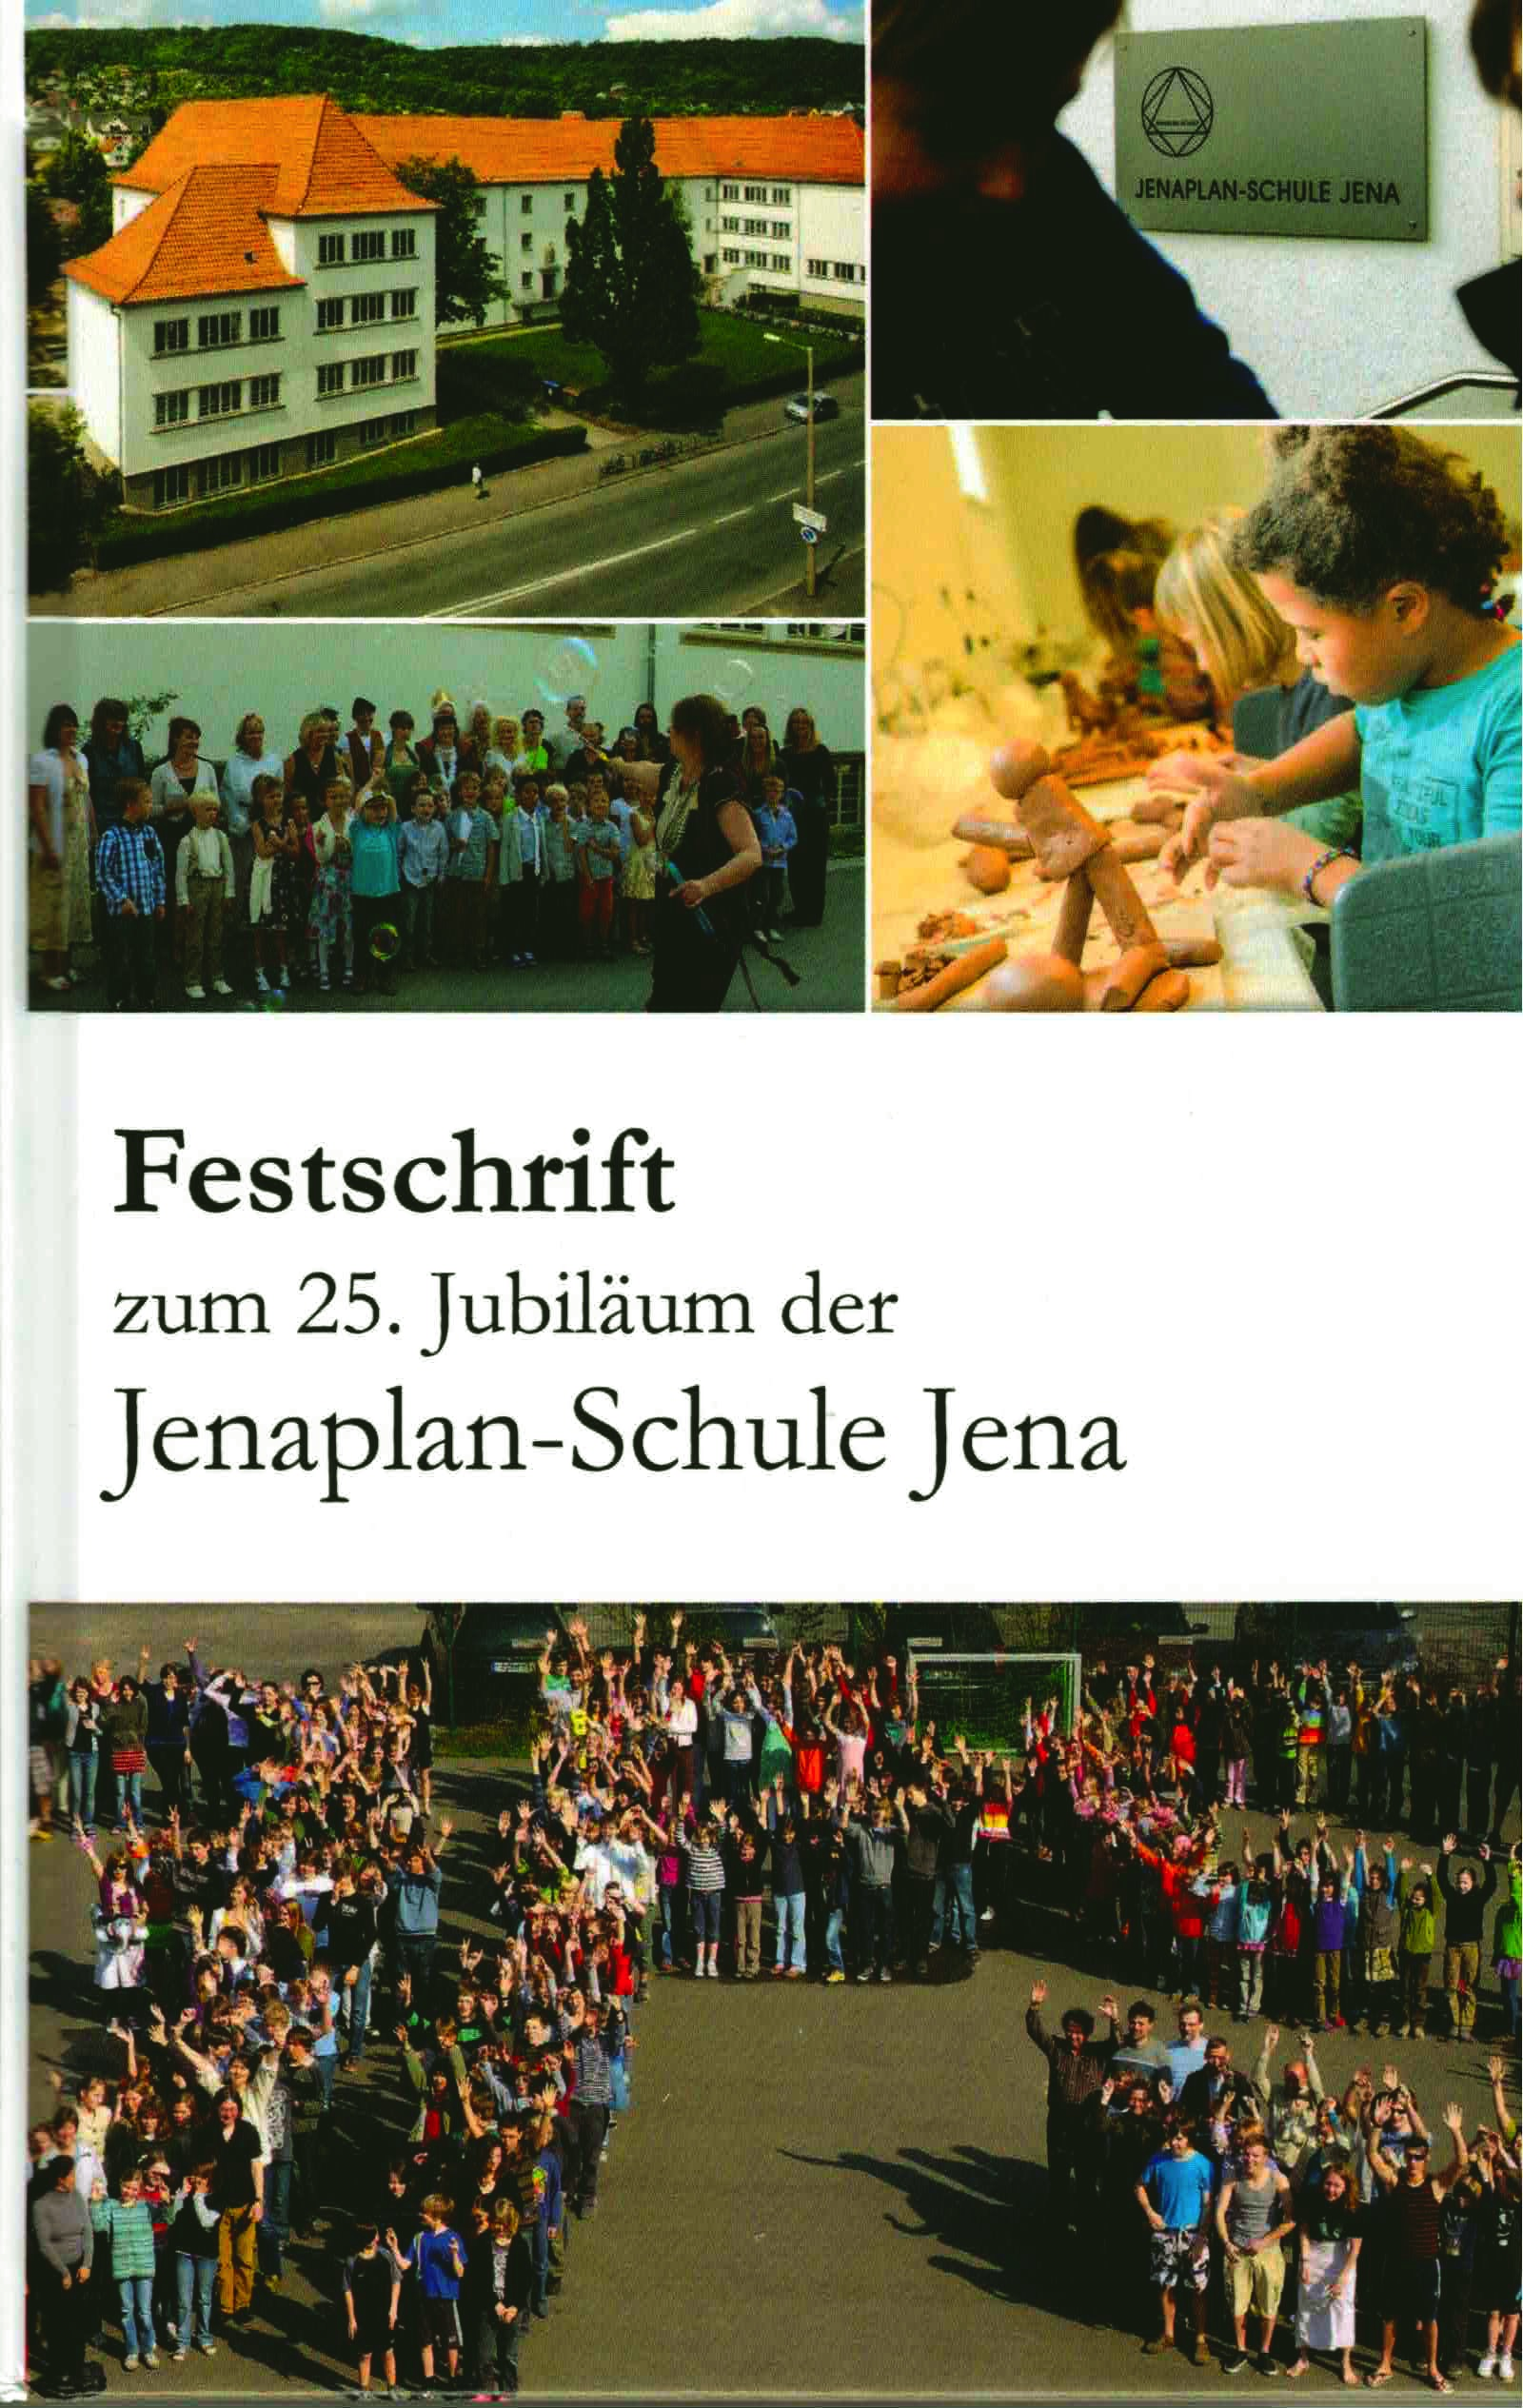 """Figure 14: Cover of the """"Festschrift"""" for the 25th anniversary of the Jenaplan-Schule Jena."""